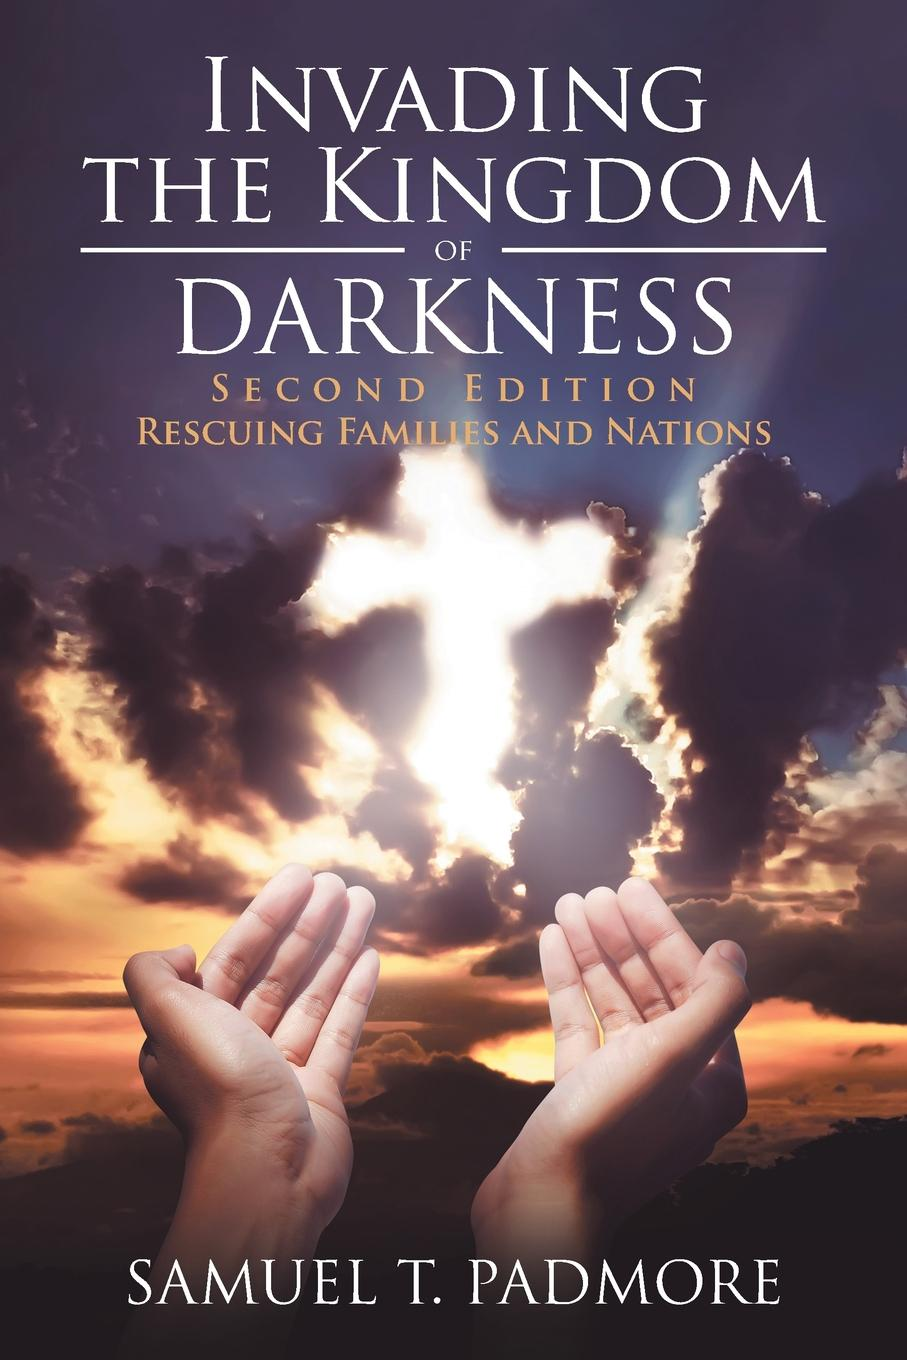 Samuel T. Padmore Invading the Kingdom of Darkness. Rescuing Families and Nations amy lyman the trustworthy leader leveraging the power of trust to transform your organization